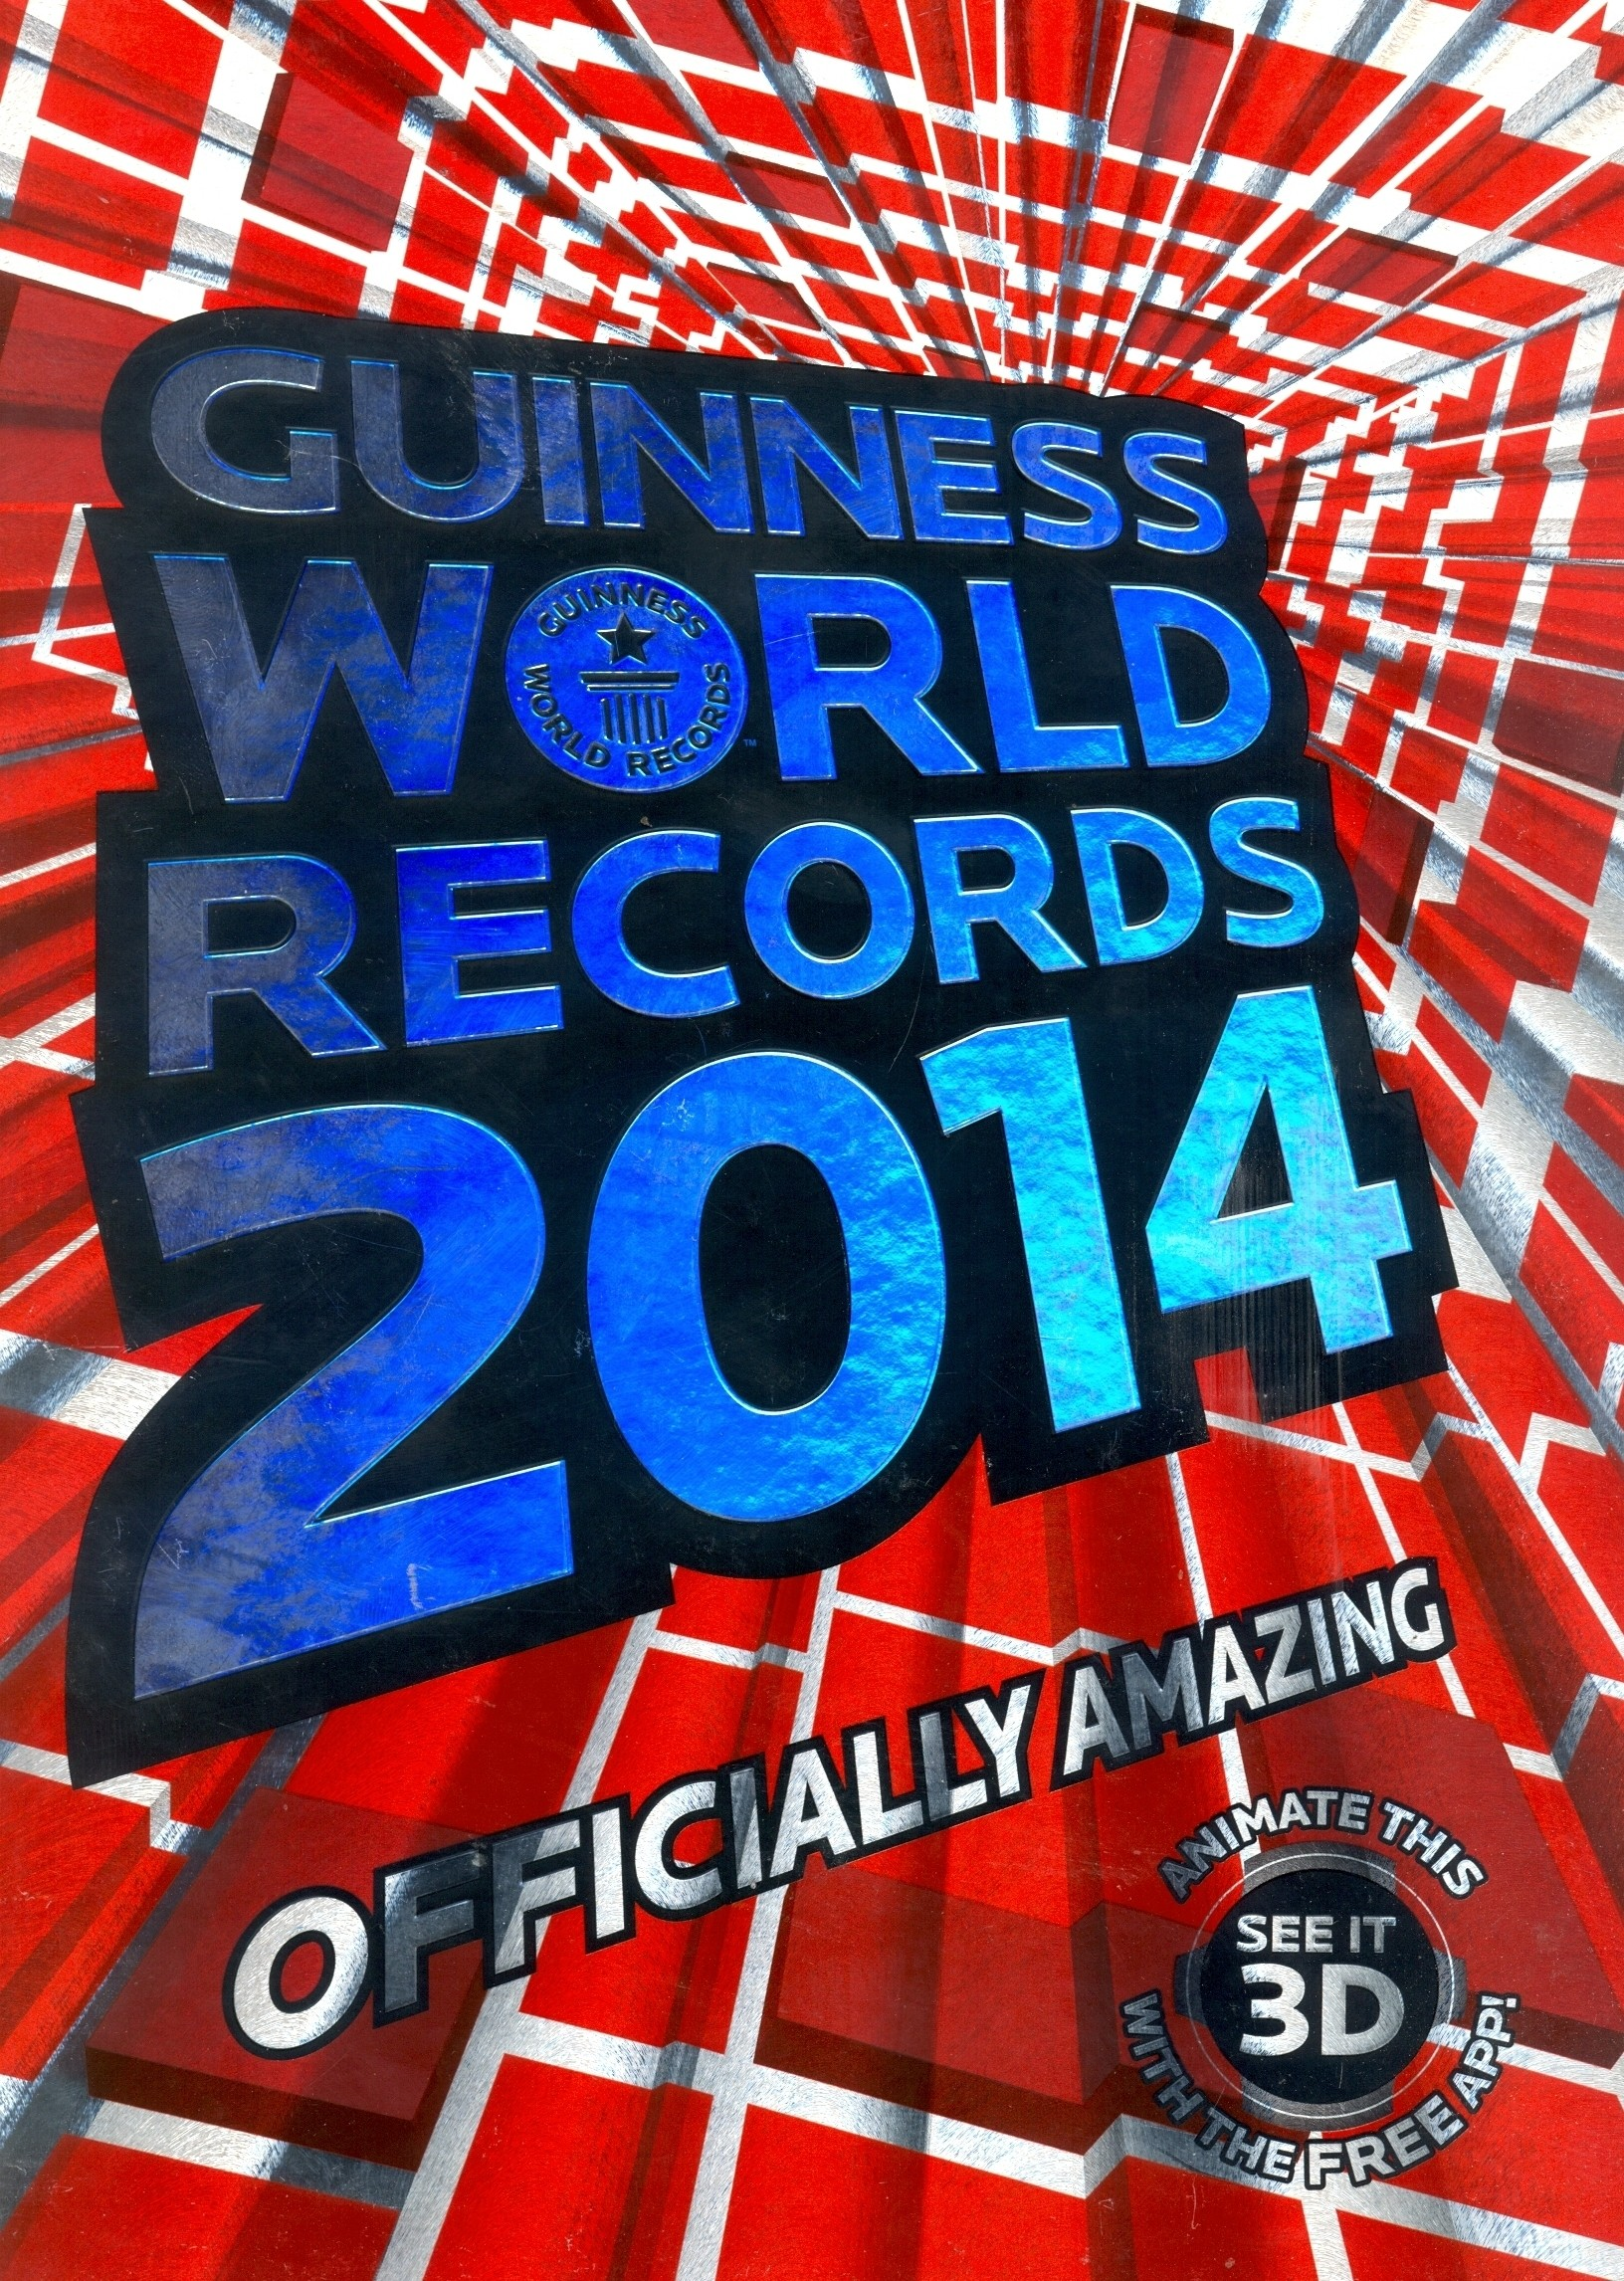 Guinness World Records 2014 (English) - Buy Guinness World Records 2014 (English) by Guinness World Records Online at Best Prices in India ...